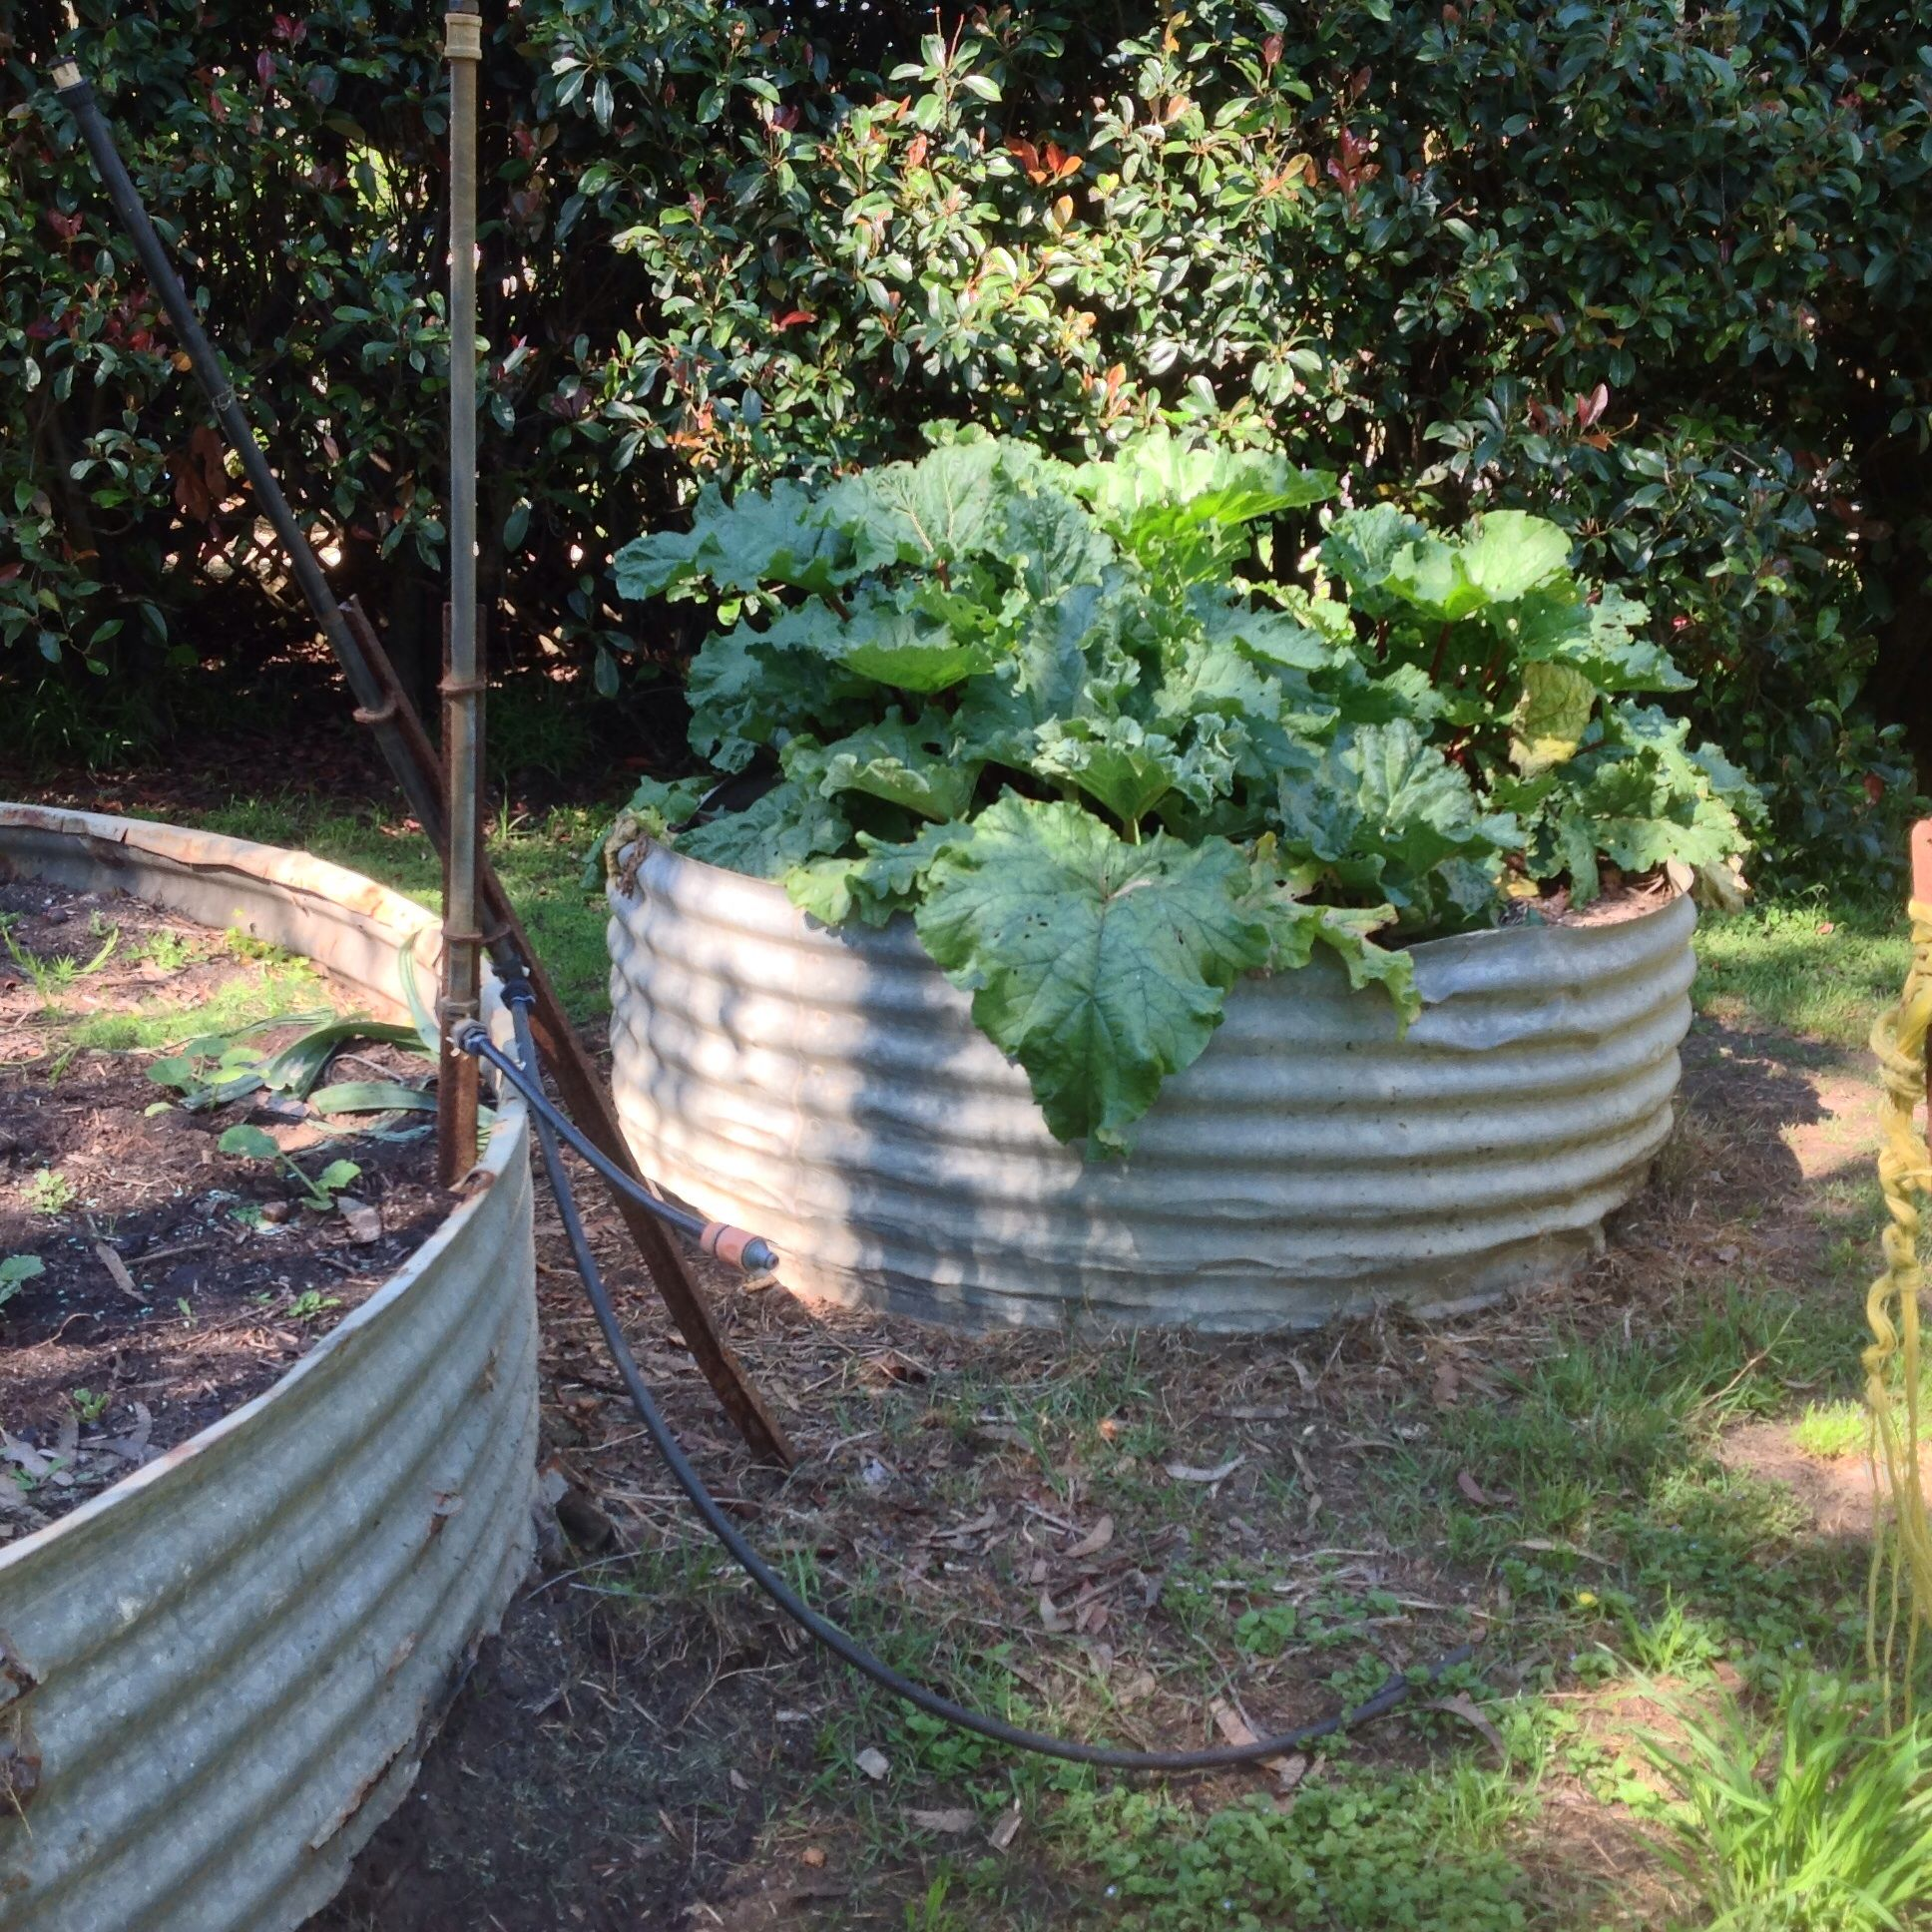 Growing Healthy Rhubarb We Use Old Corrugated Iron Water Tanks